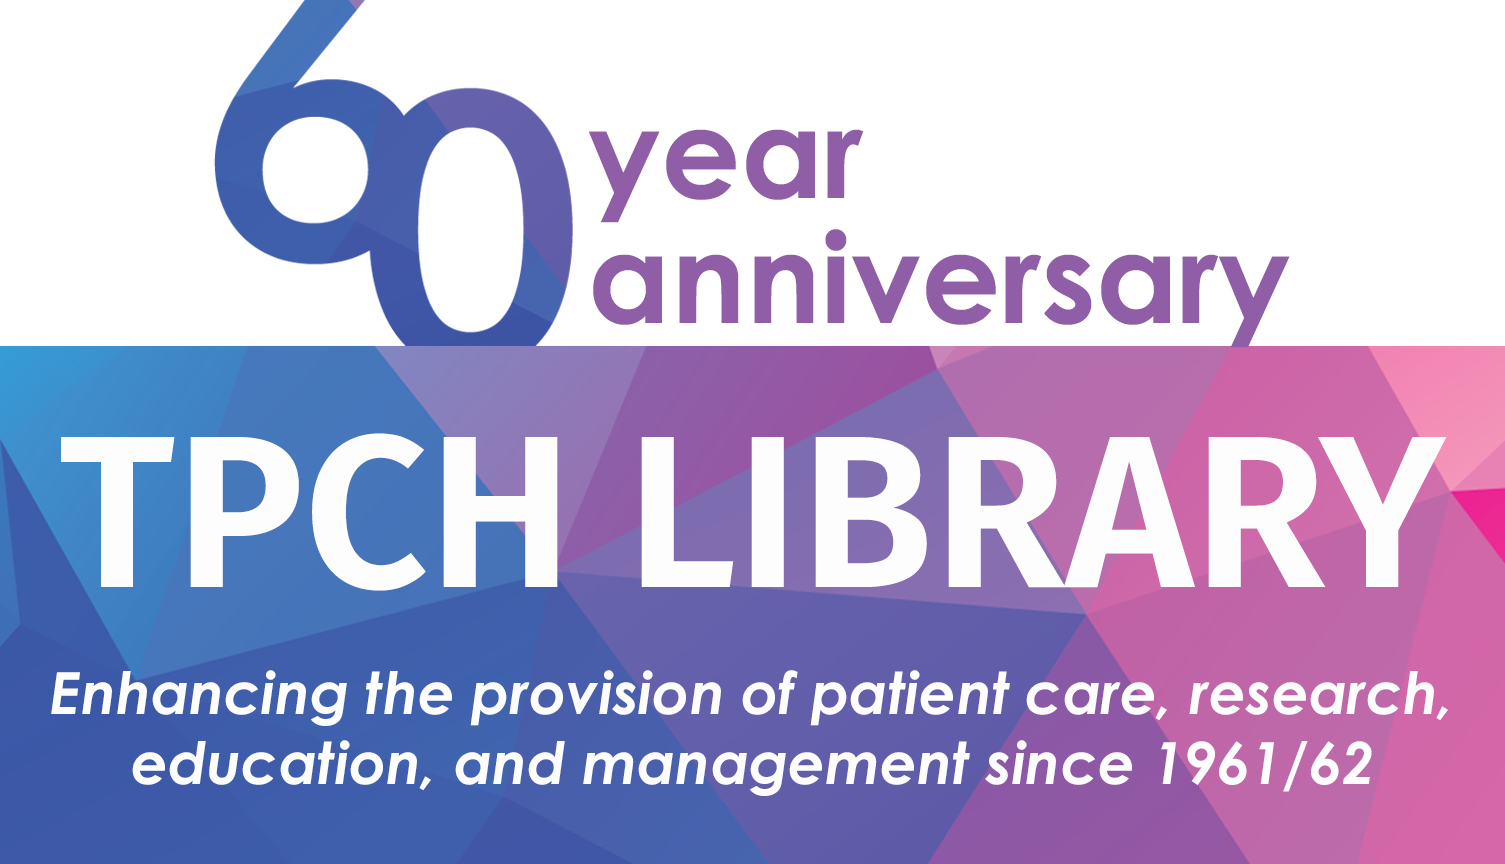 Celebrating 60 years of TPCH Library